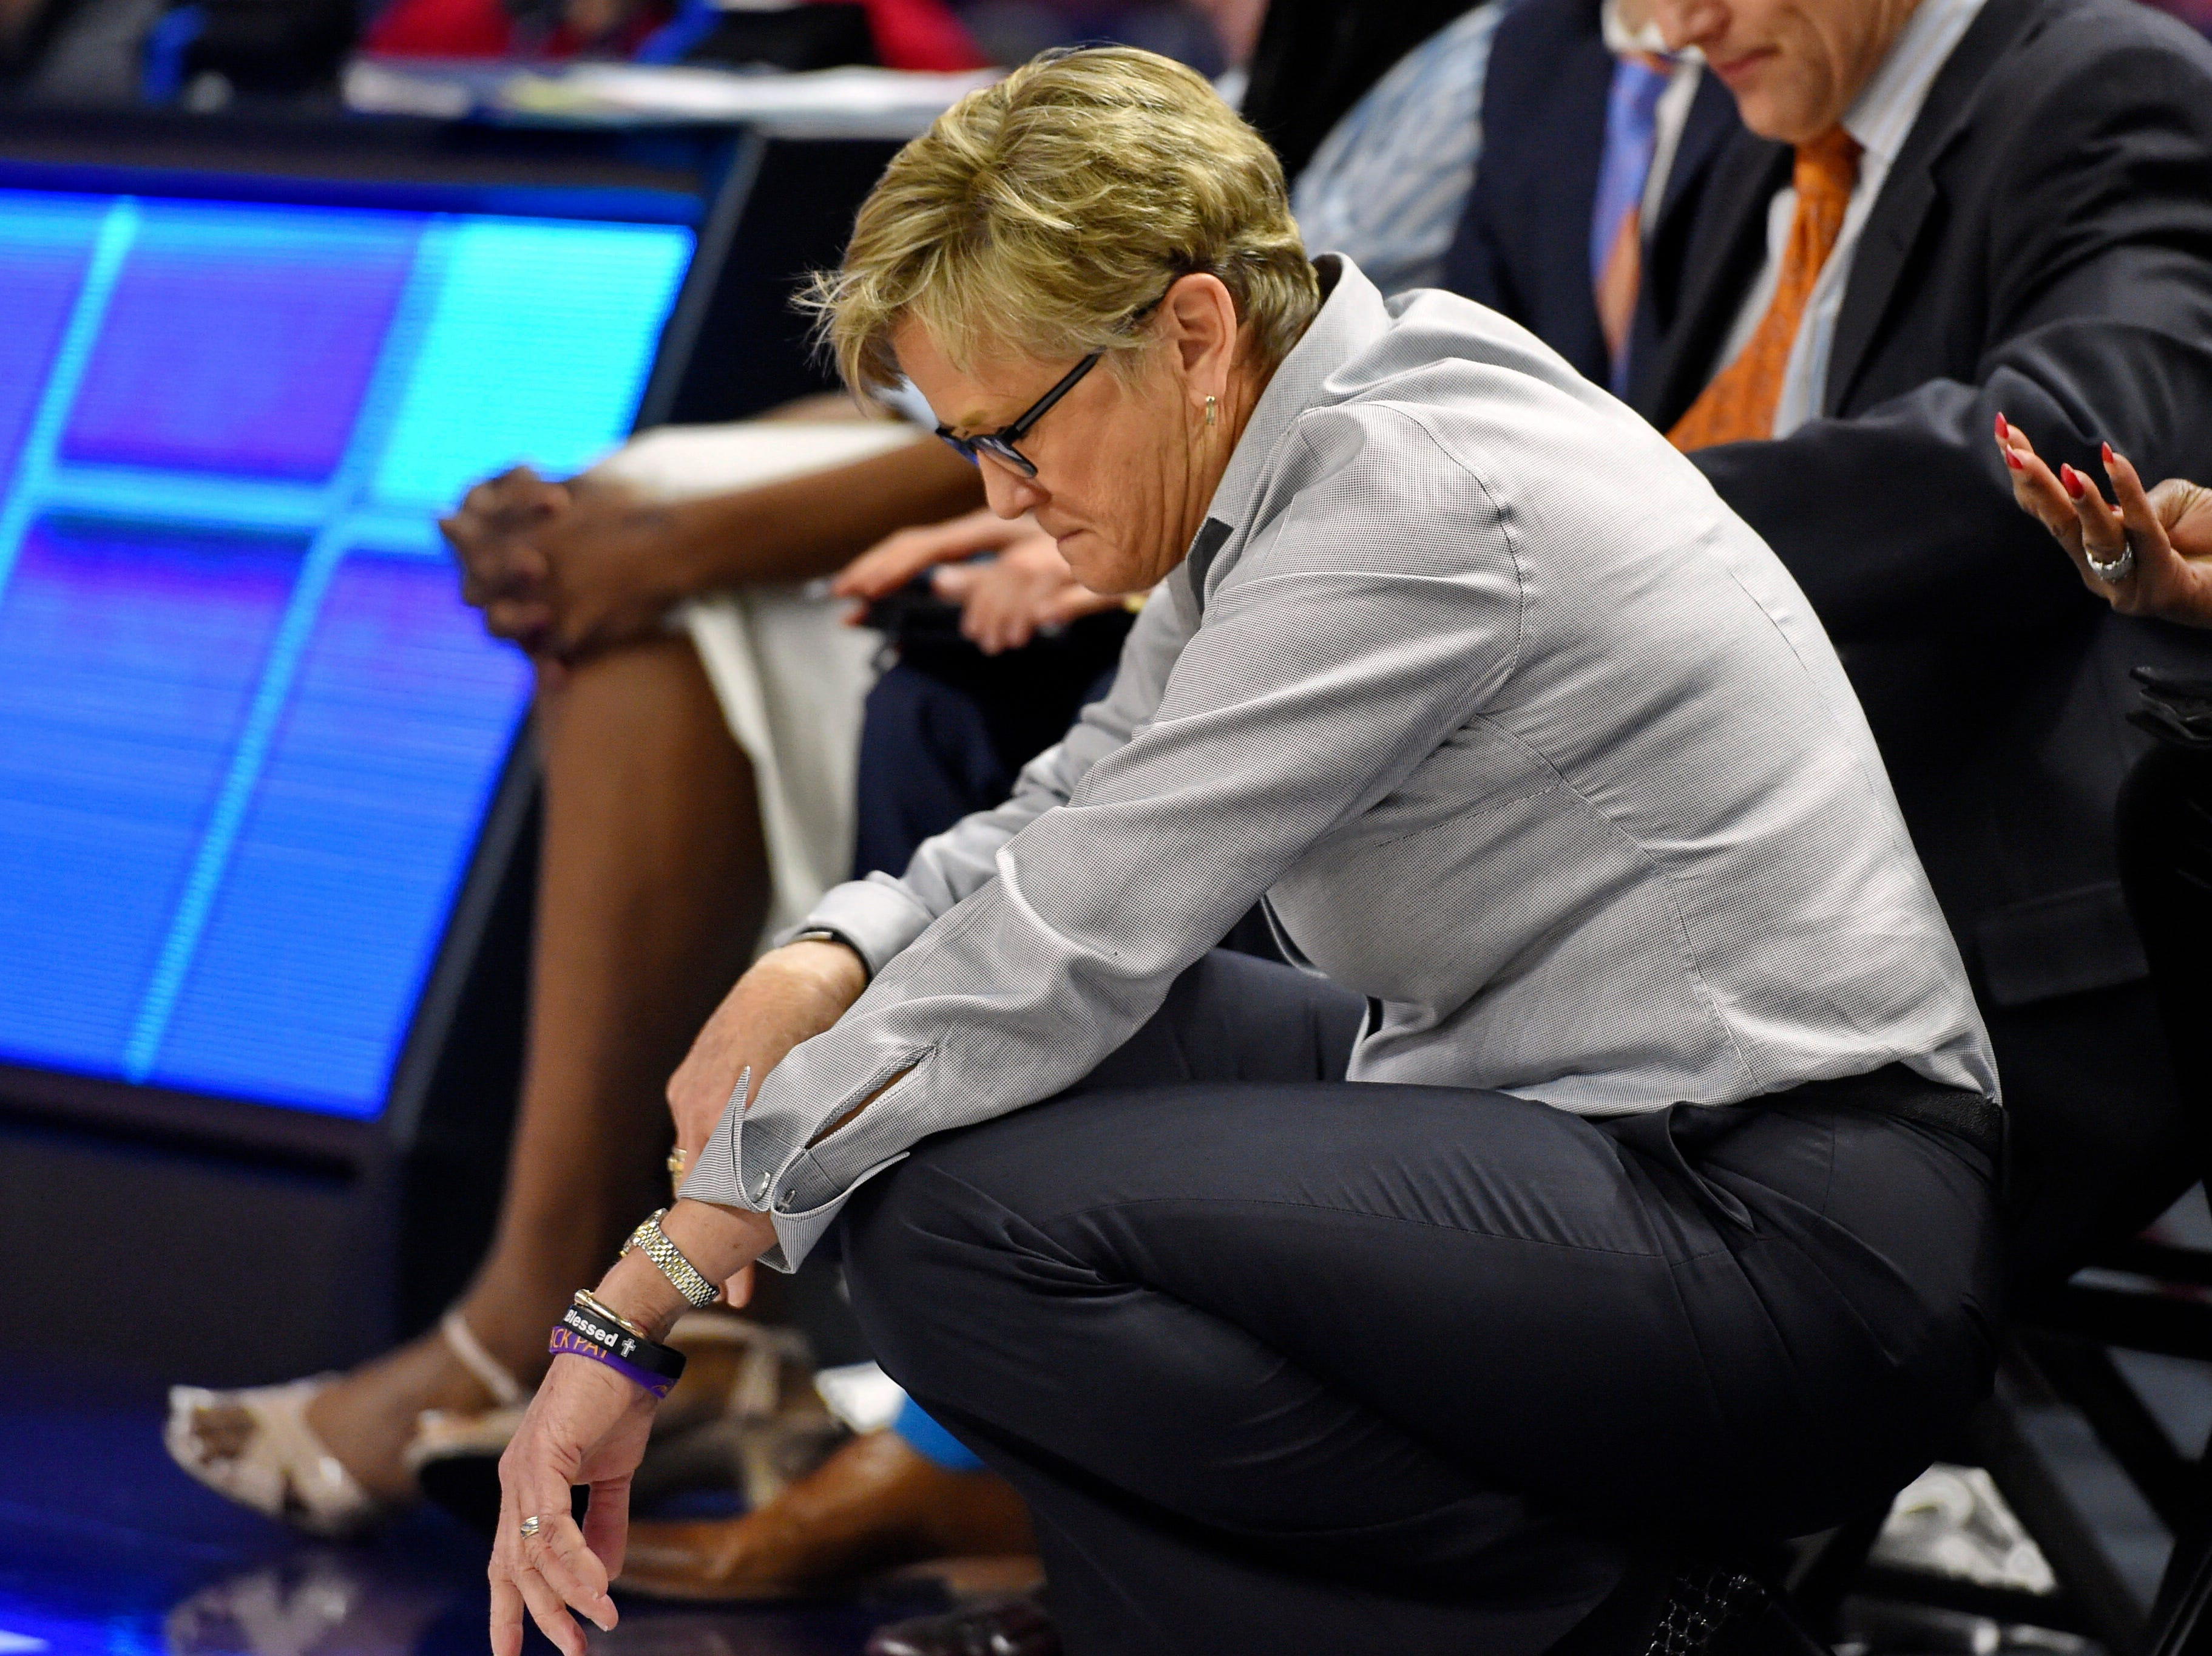 Tennessee head coach Holly Warlick reacts on the sideline during the closing minutes in the second half of an NCAA college basketball game against Mississippi State at the Southeastern Conference women's tournament, Friday, March 8, 2019, in Greenville, S.C. Mississippi State won 83-68.